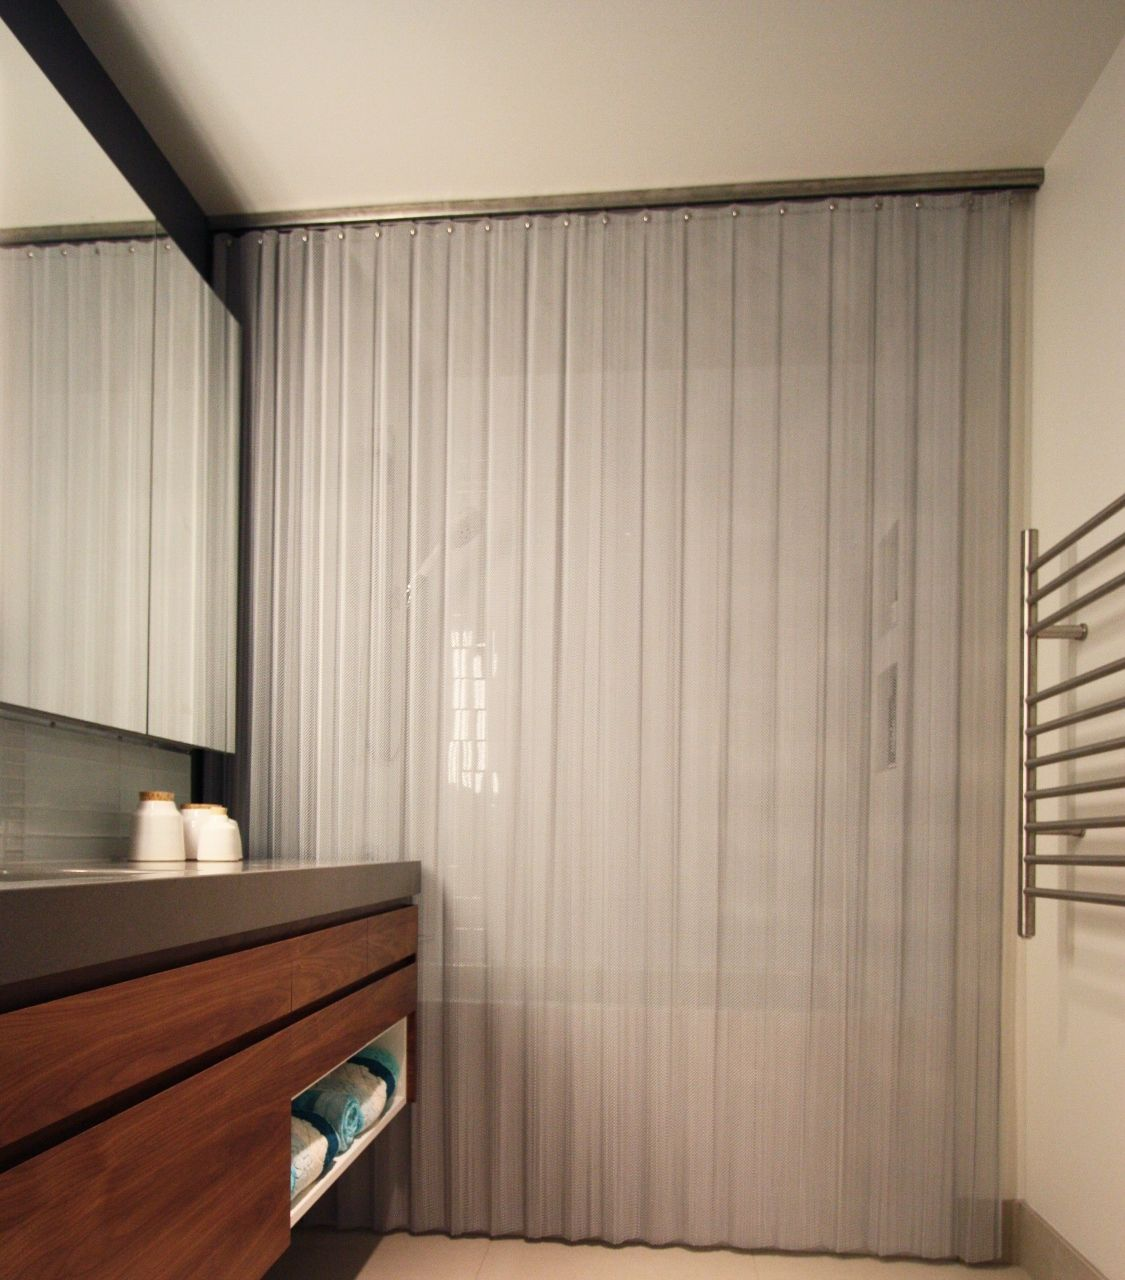 Cascade Coil Offers Beautiful Custom Made Woven Luxury Shower Curtains In A Variety Of Weave Sizes Fullness And Finish Options